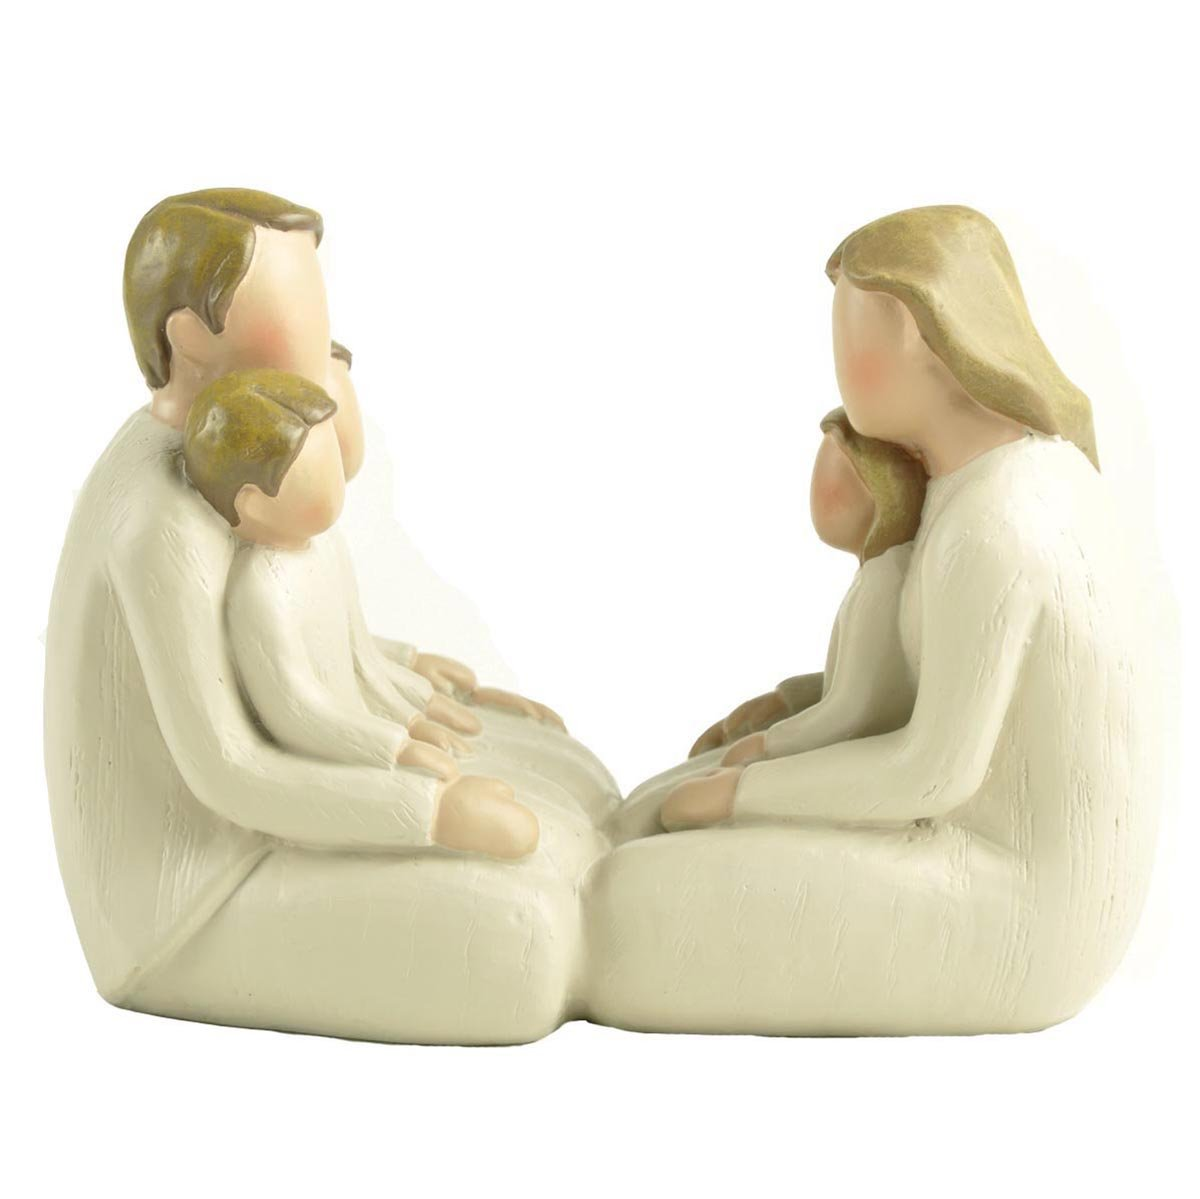 "ENNAS 3.75"" H Happy Faceless Family of Five Figurines Collectibles Home Decor/Tabletop Gifts"